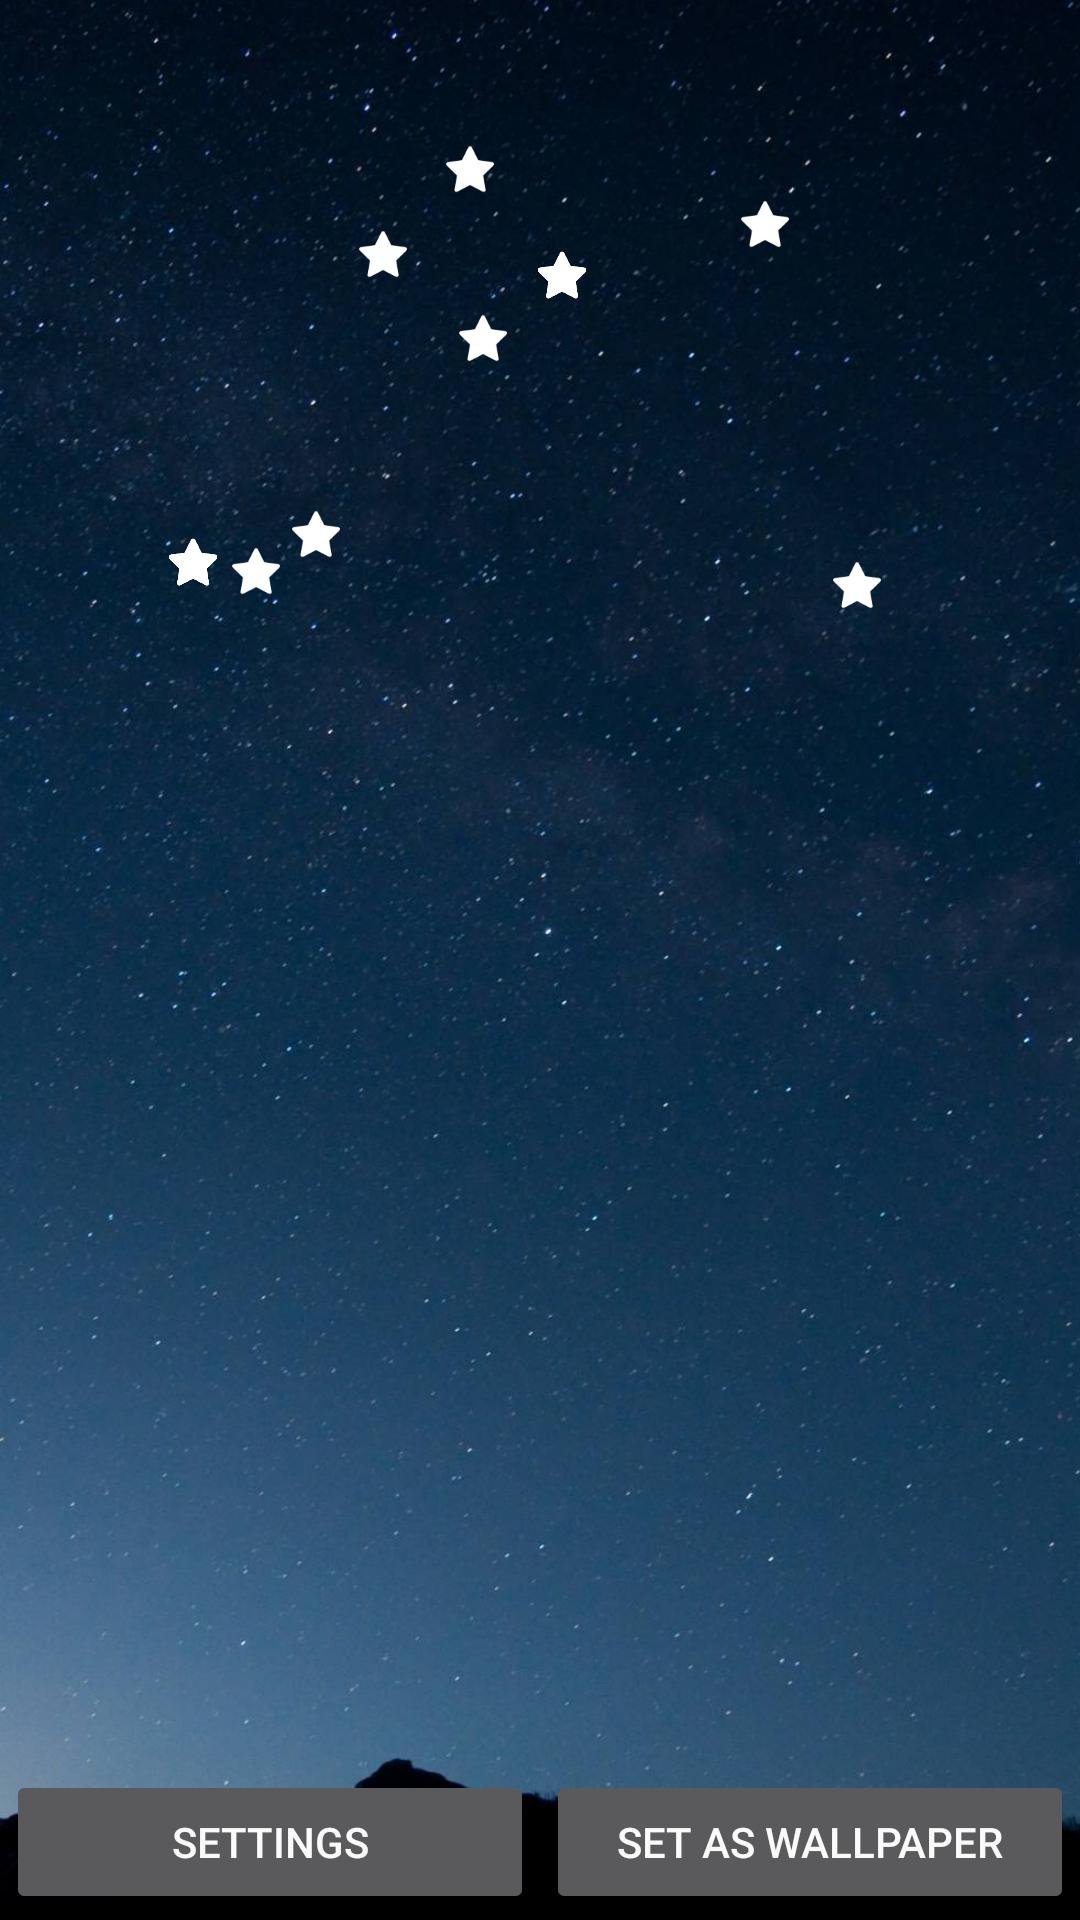 Sky Night Live Wallpaper With The Falling Stars For Android Apk Download